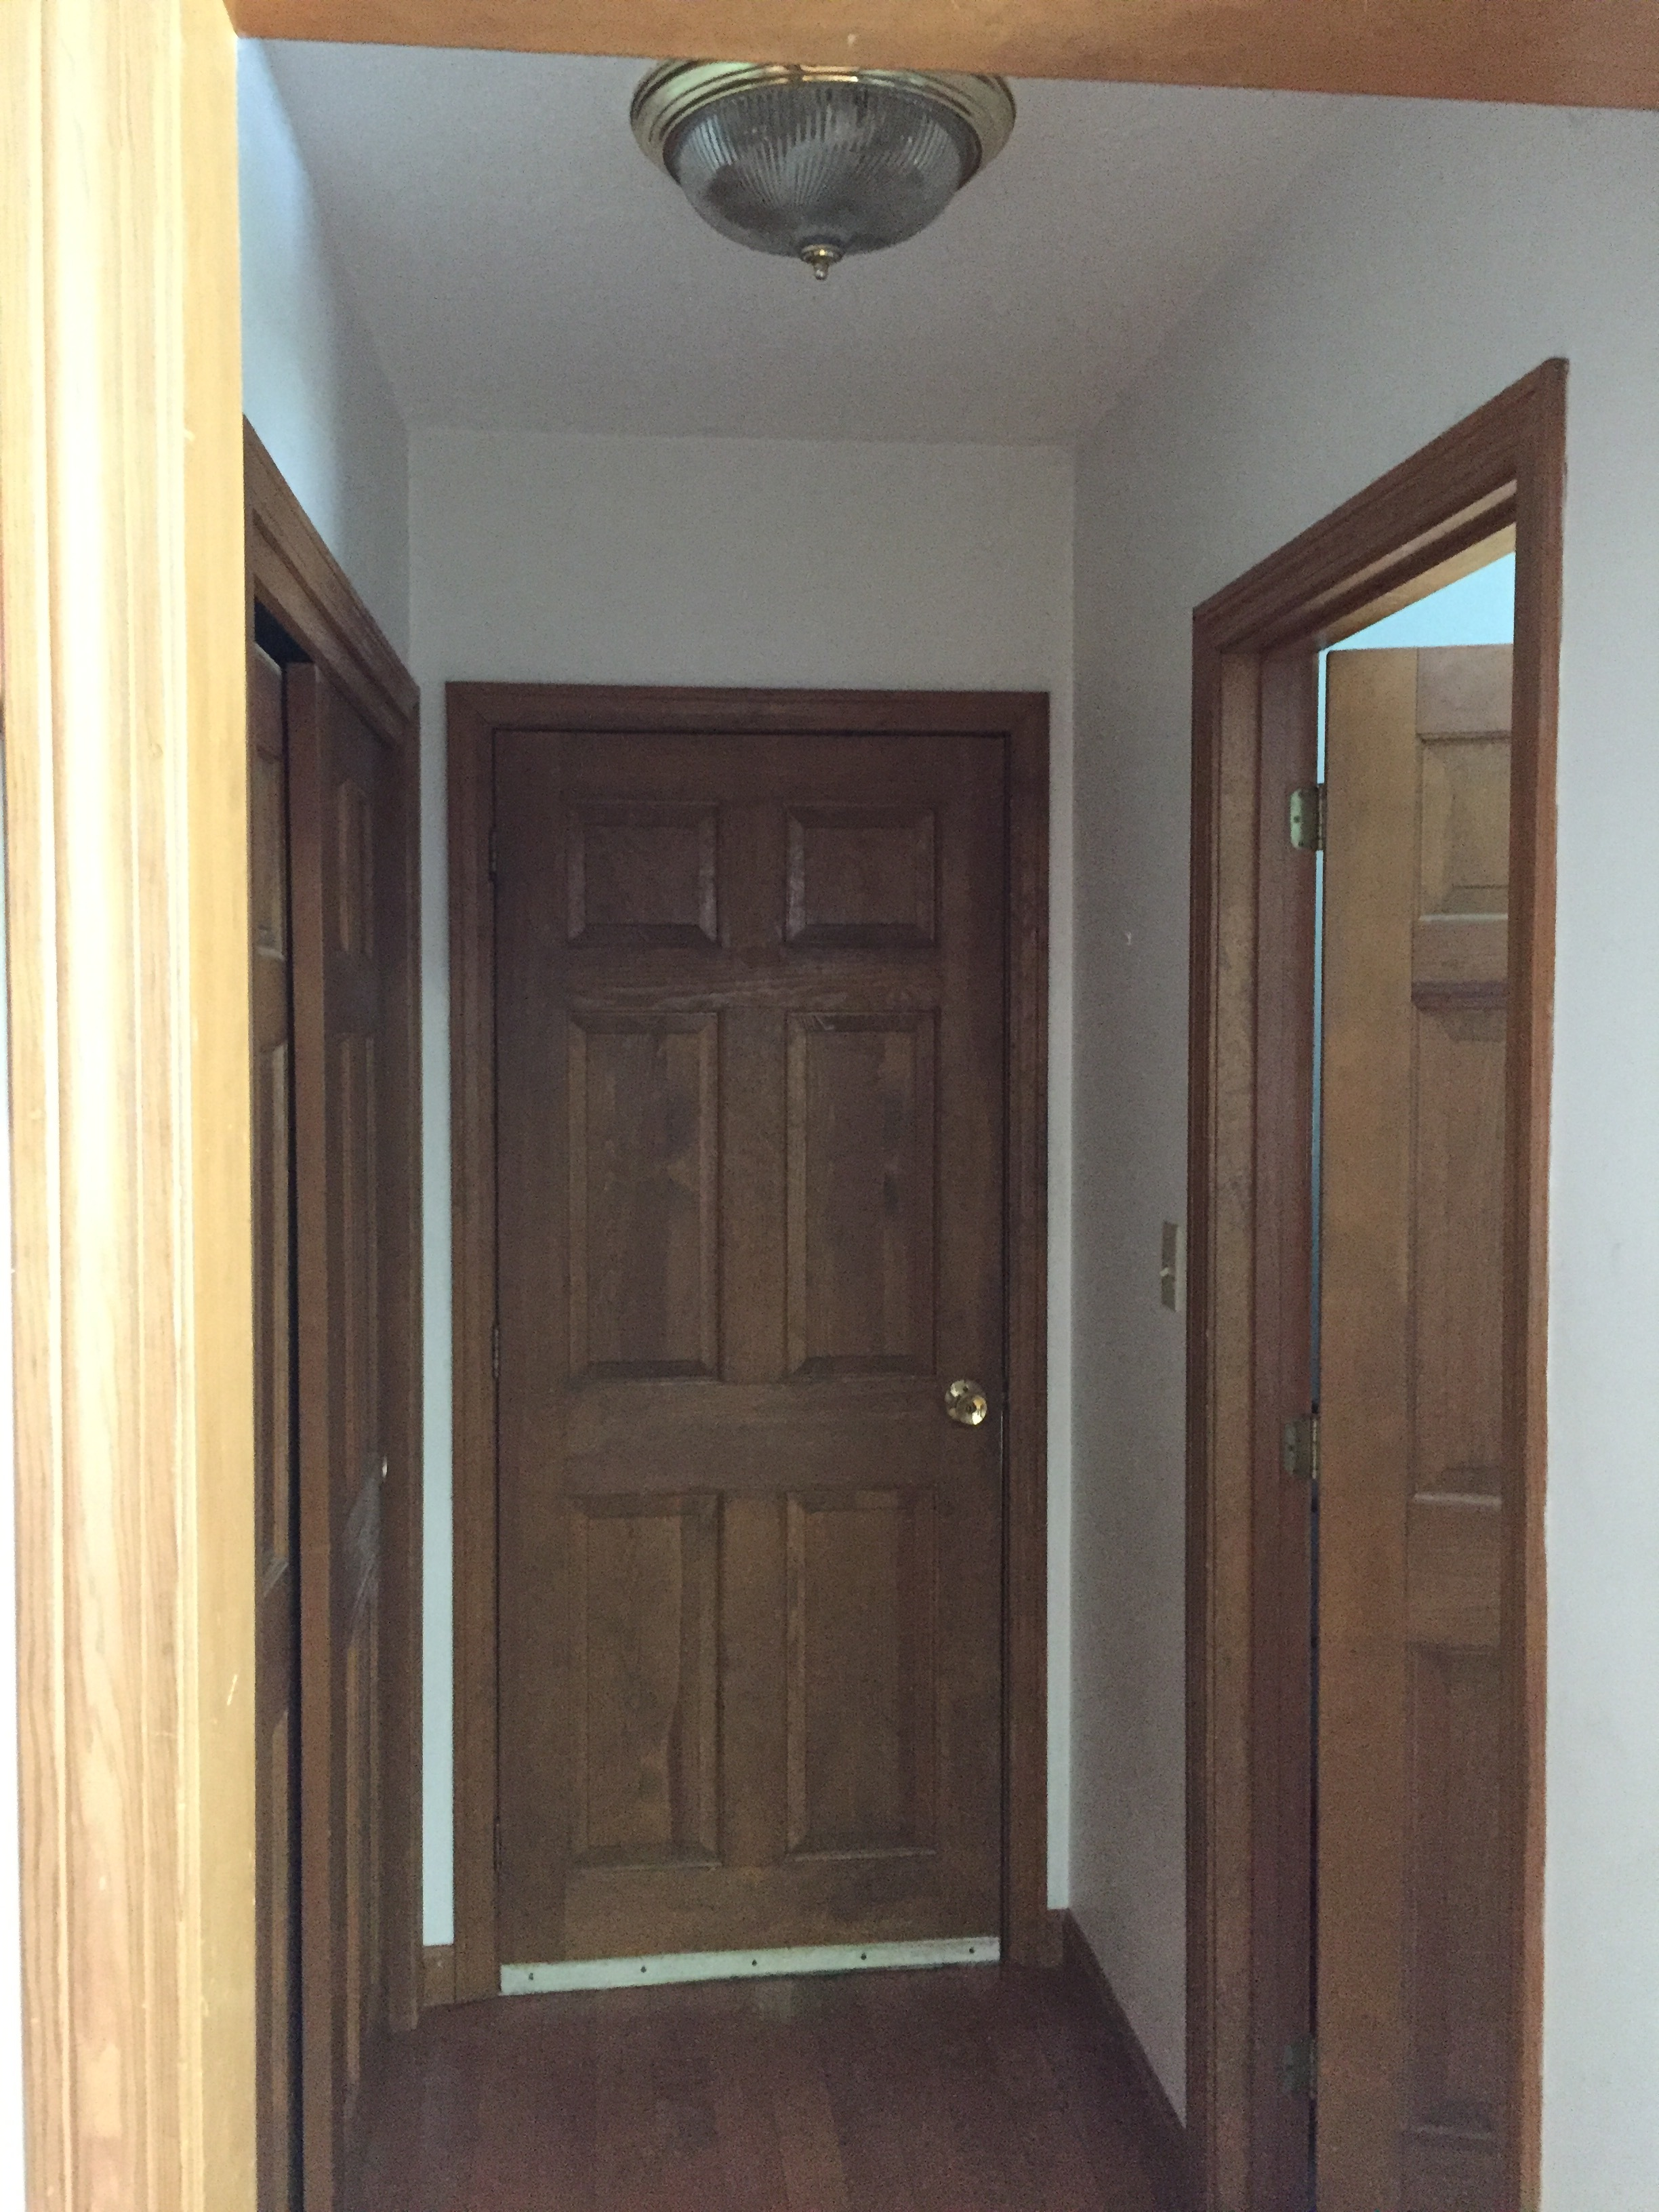 Before - Coat Closet and Hall to Garage, Powder Room on Right